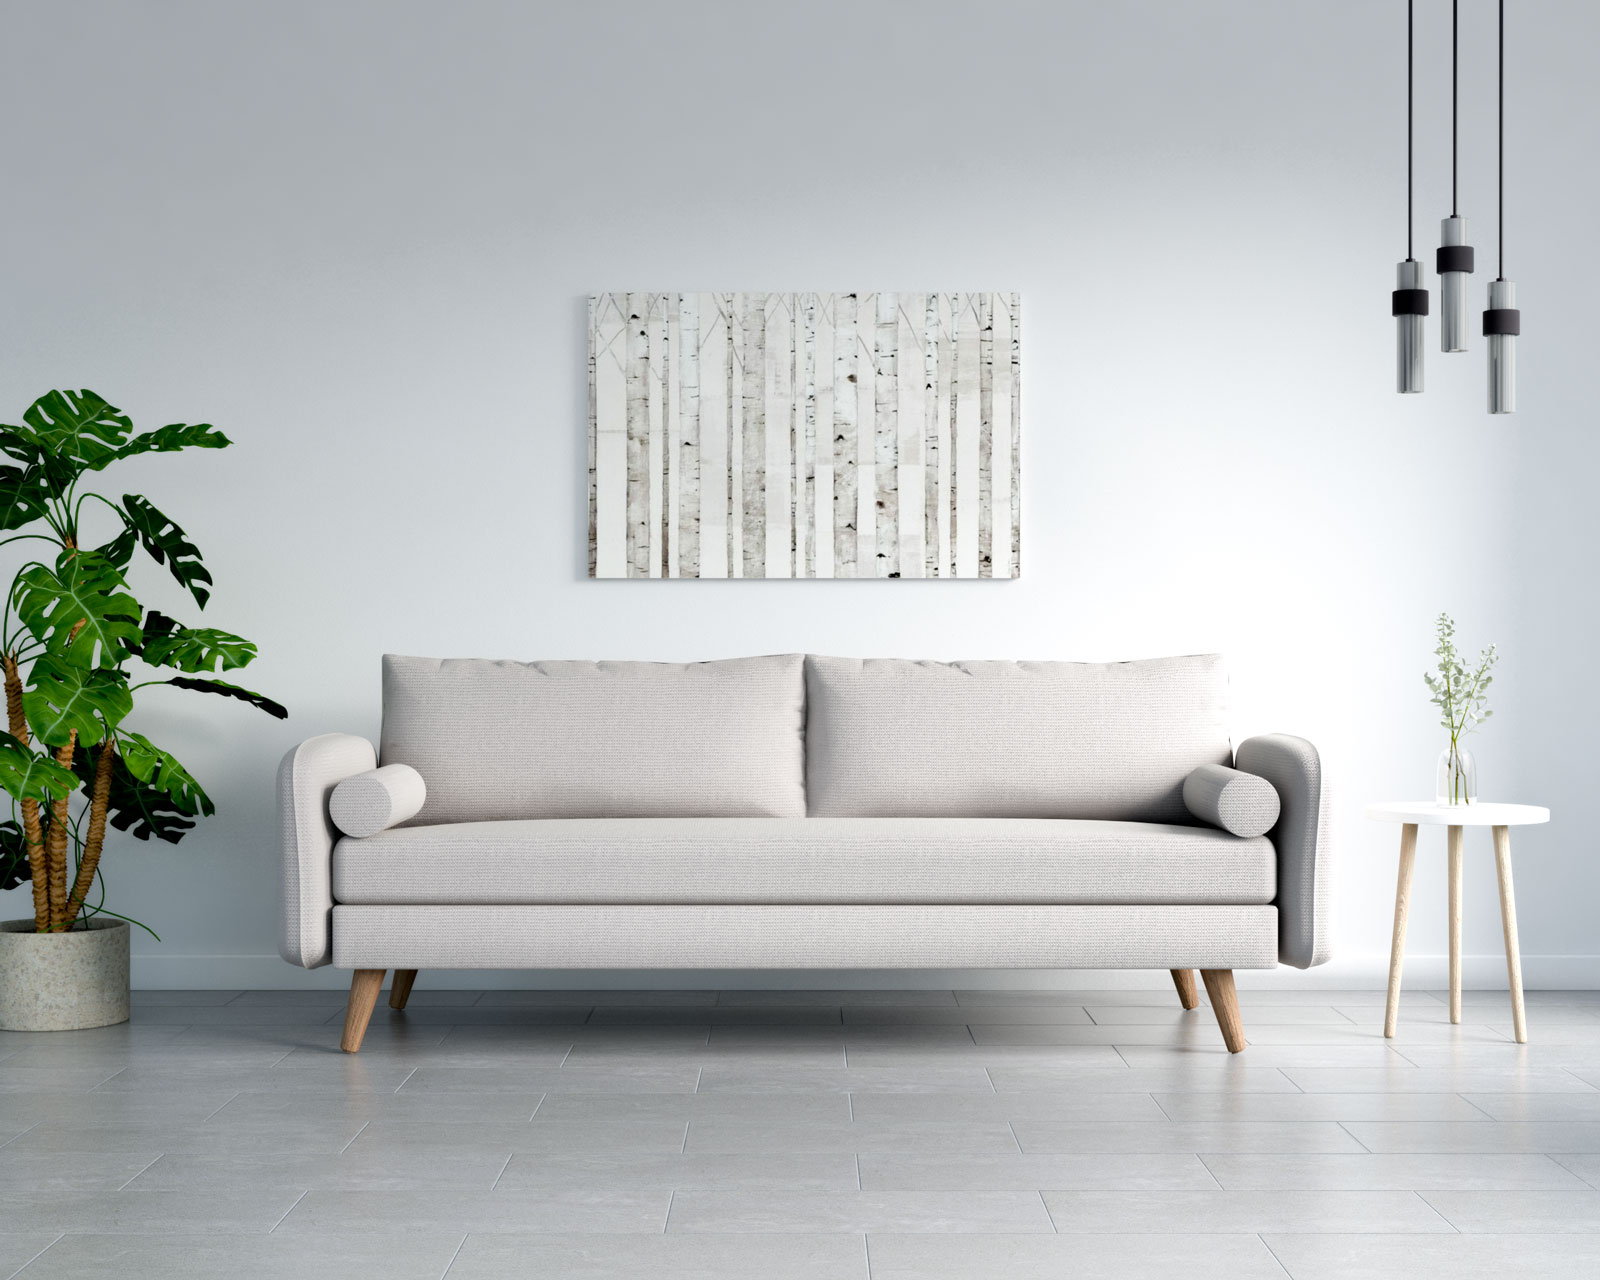 Beige couch with gray floors